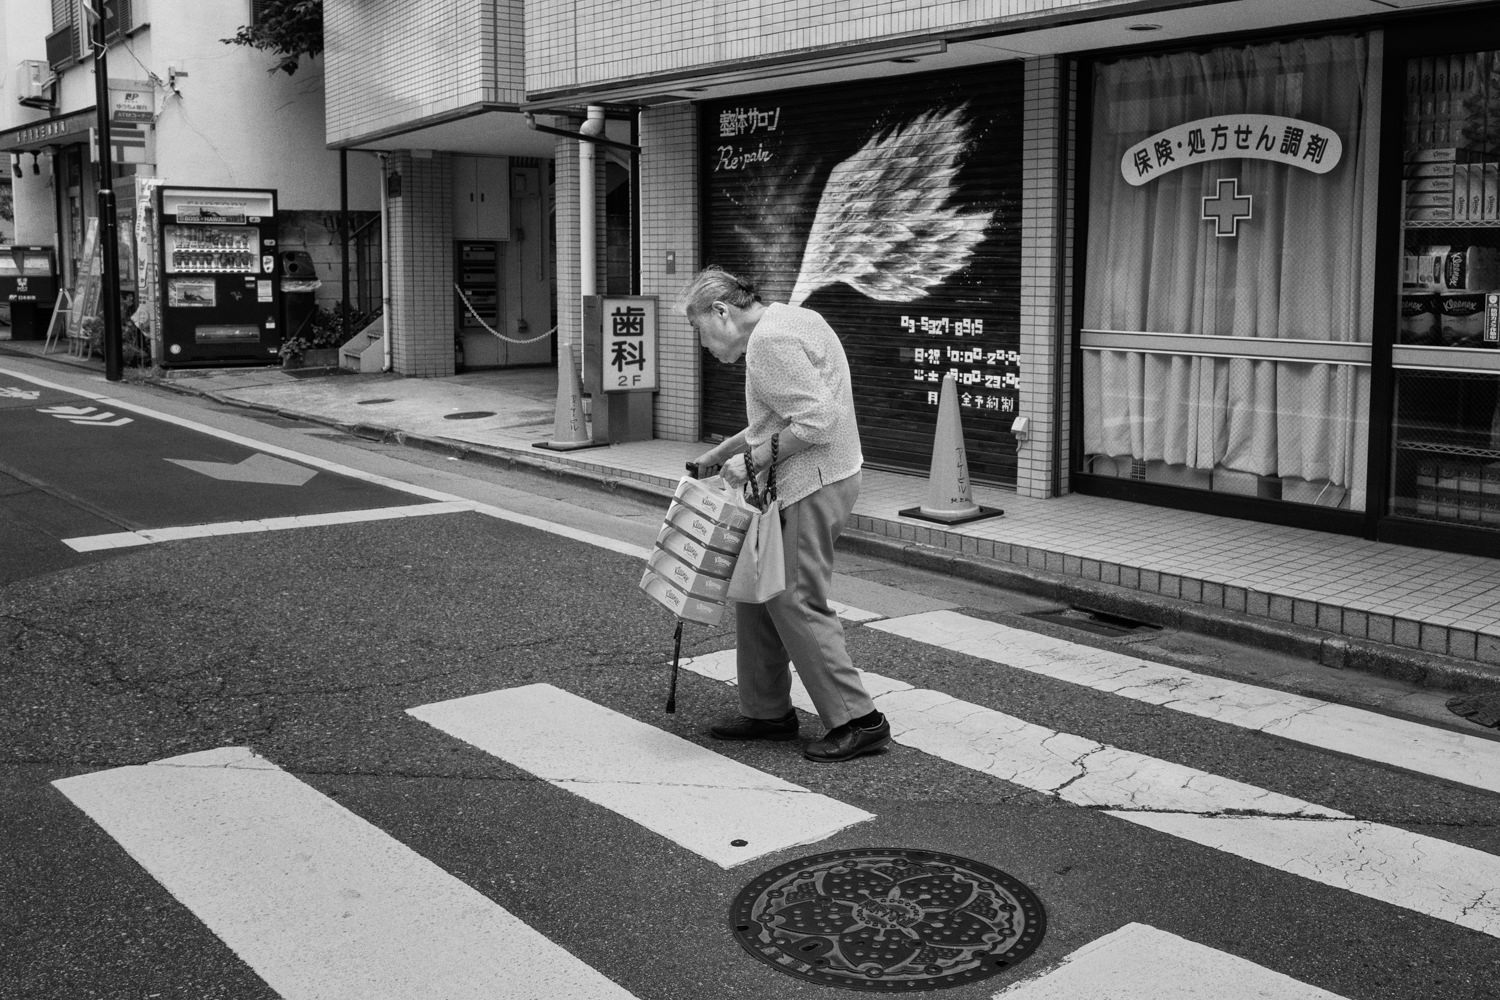 street photography  Street Photography in Tokyo by Leica Ambassador Eolo Perfido